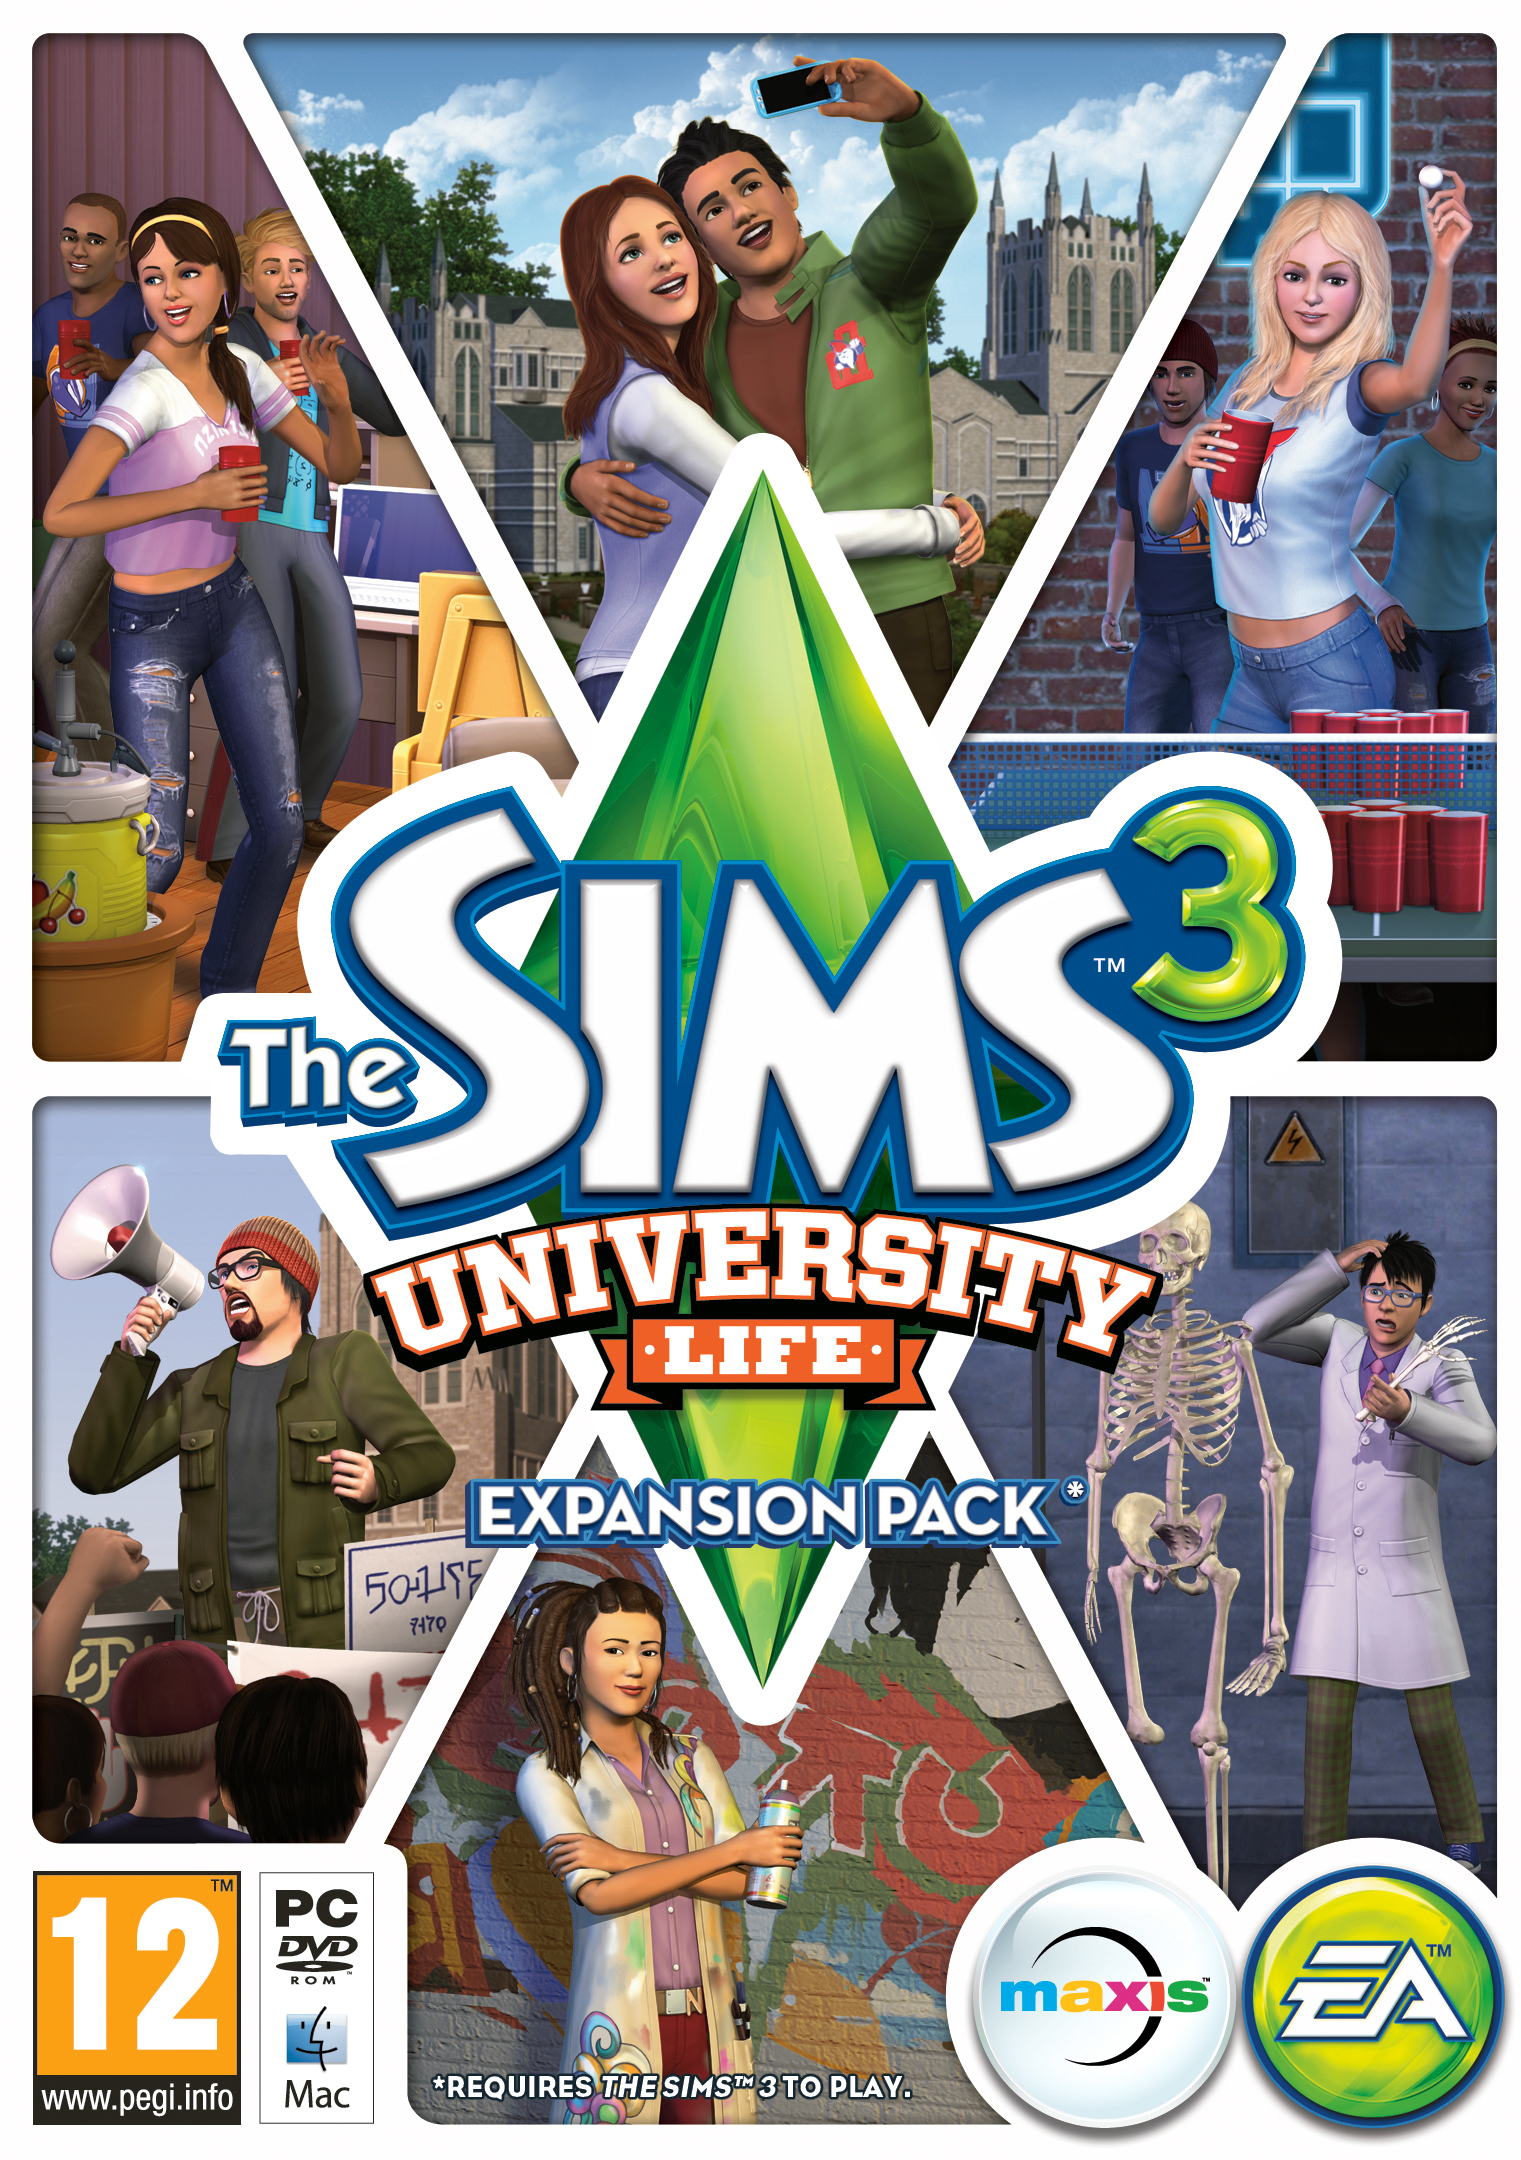 File:The sims 3 university life box art.jpg